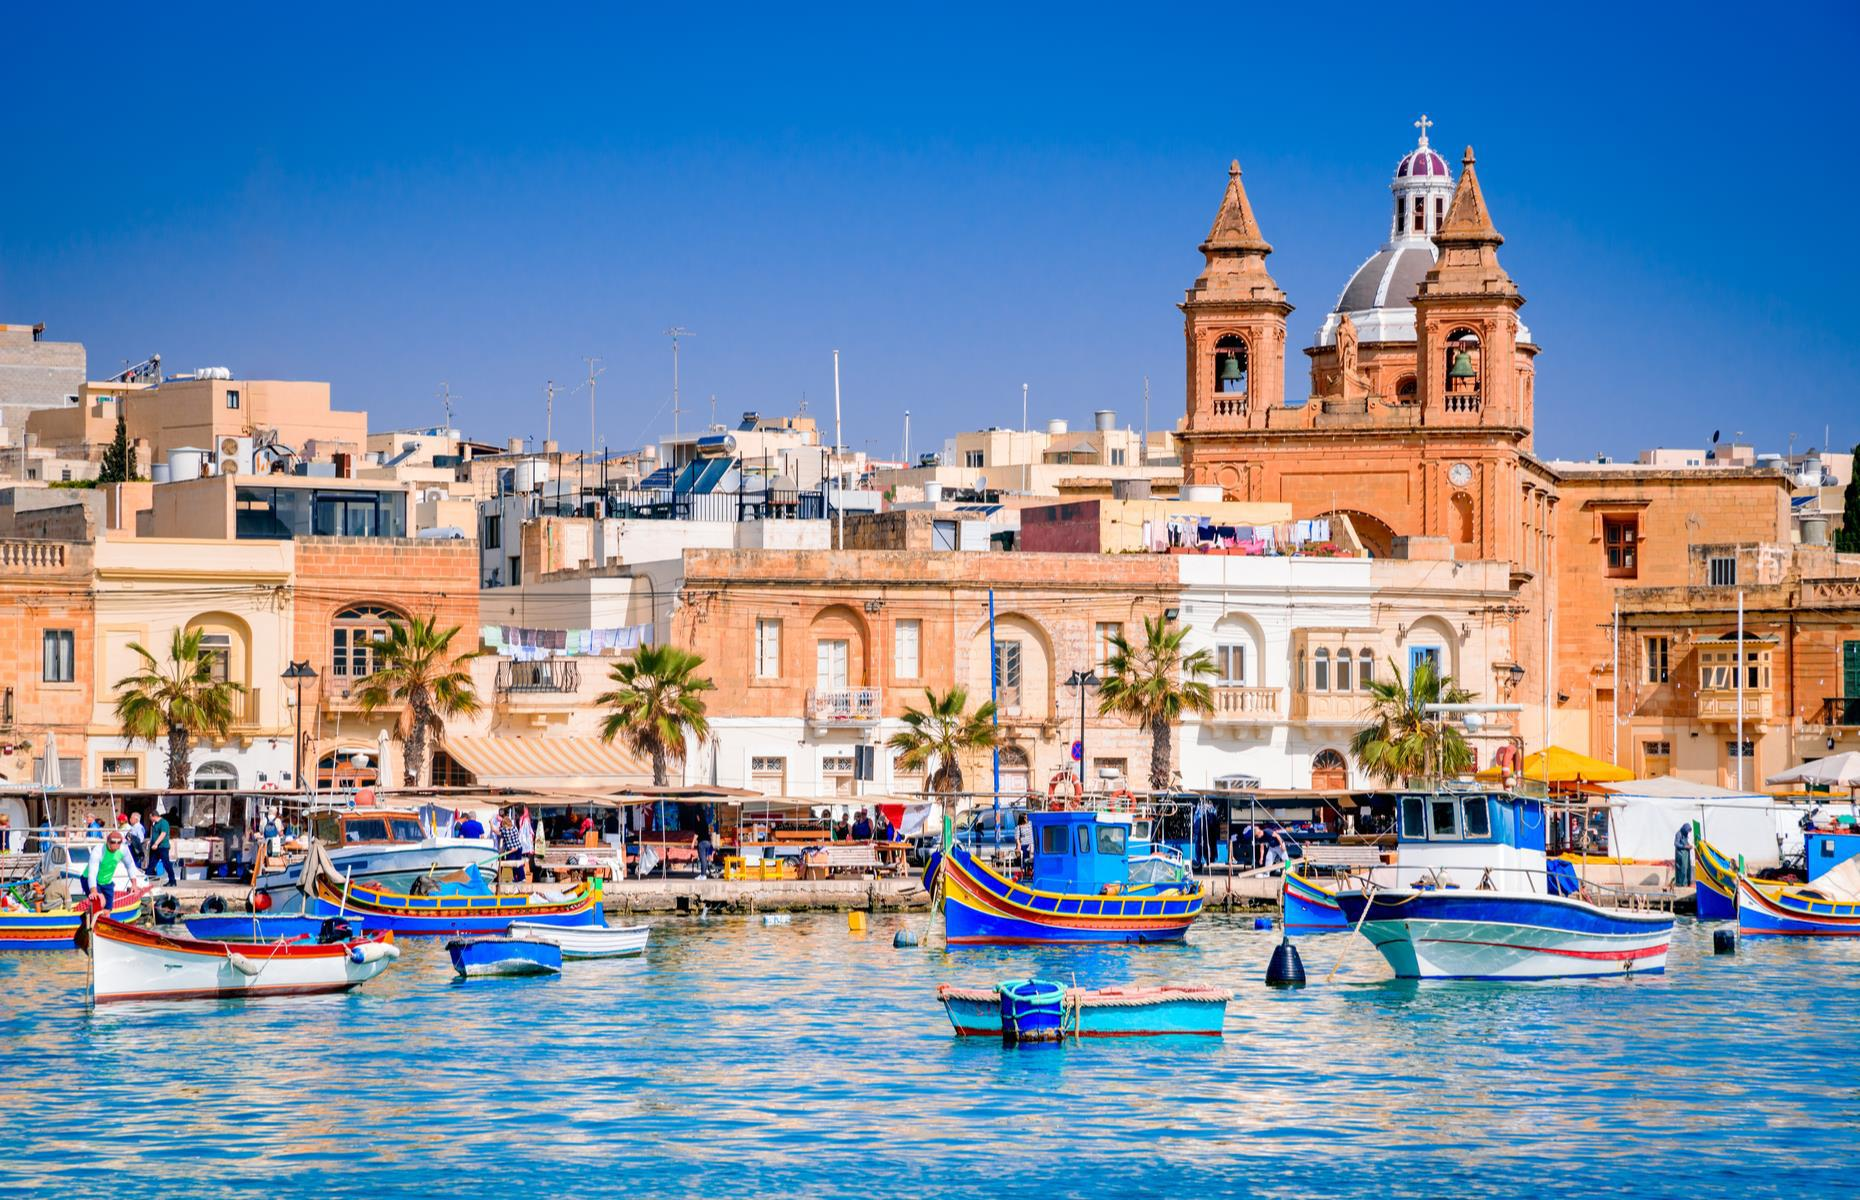 Slide 13 of 31: On Malta's southeast coast you'll find the fishing village of Marsaxlokk. Unlike most of Malta, it's virtually untouched by developers so life here is slow. Pictured is a fleet of traditional luzzu boats bobbing in the harbor.